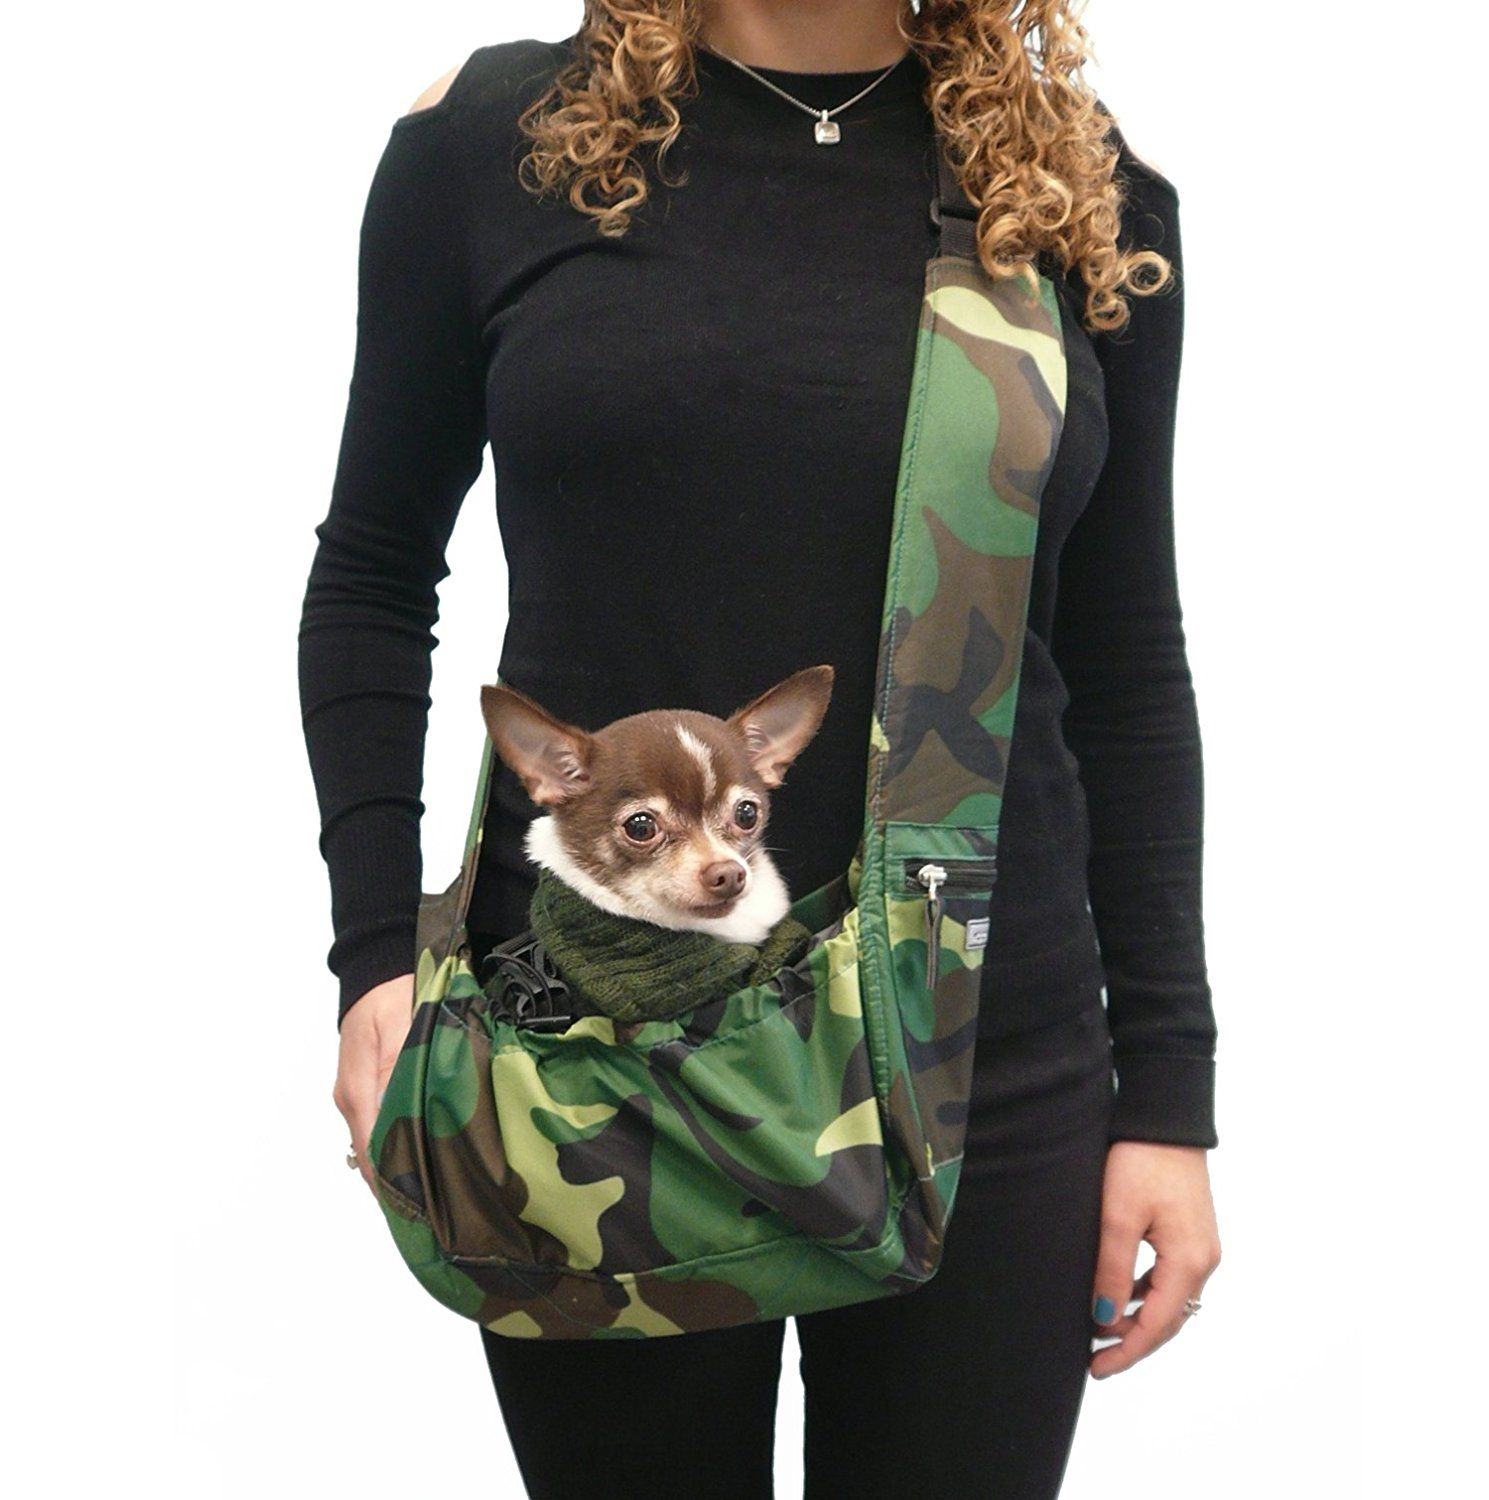 Puppy Toy Teacup Wearable Adjustable Pet Cross Body Shoulder Bag Waterproof Nylon Travel My Canine Kids Cloak /& Dawggie Dog Sling Carrier Tiny XXS Extra Extra Small Dogs